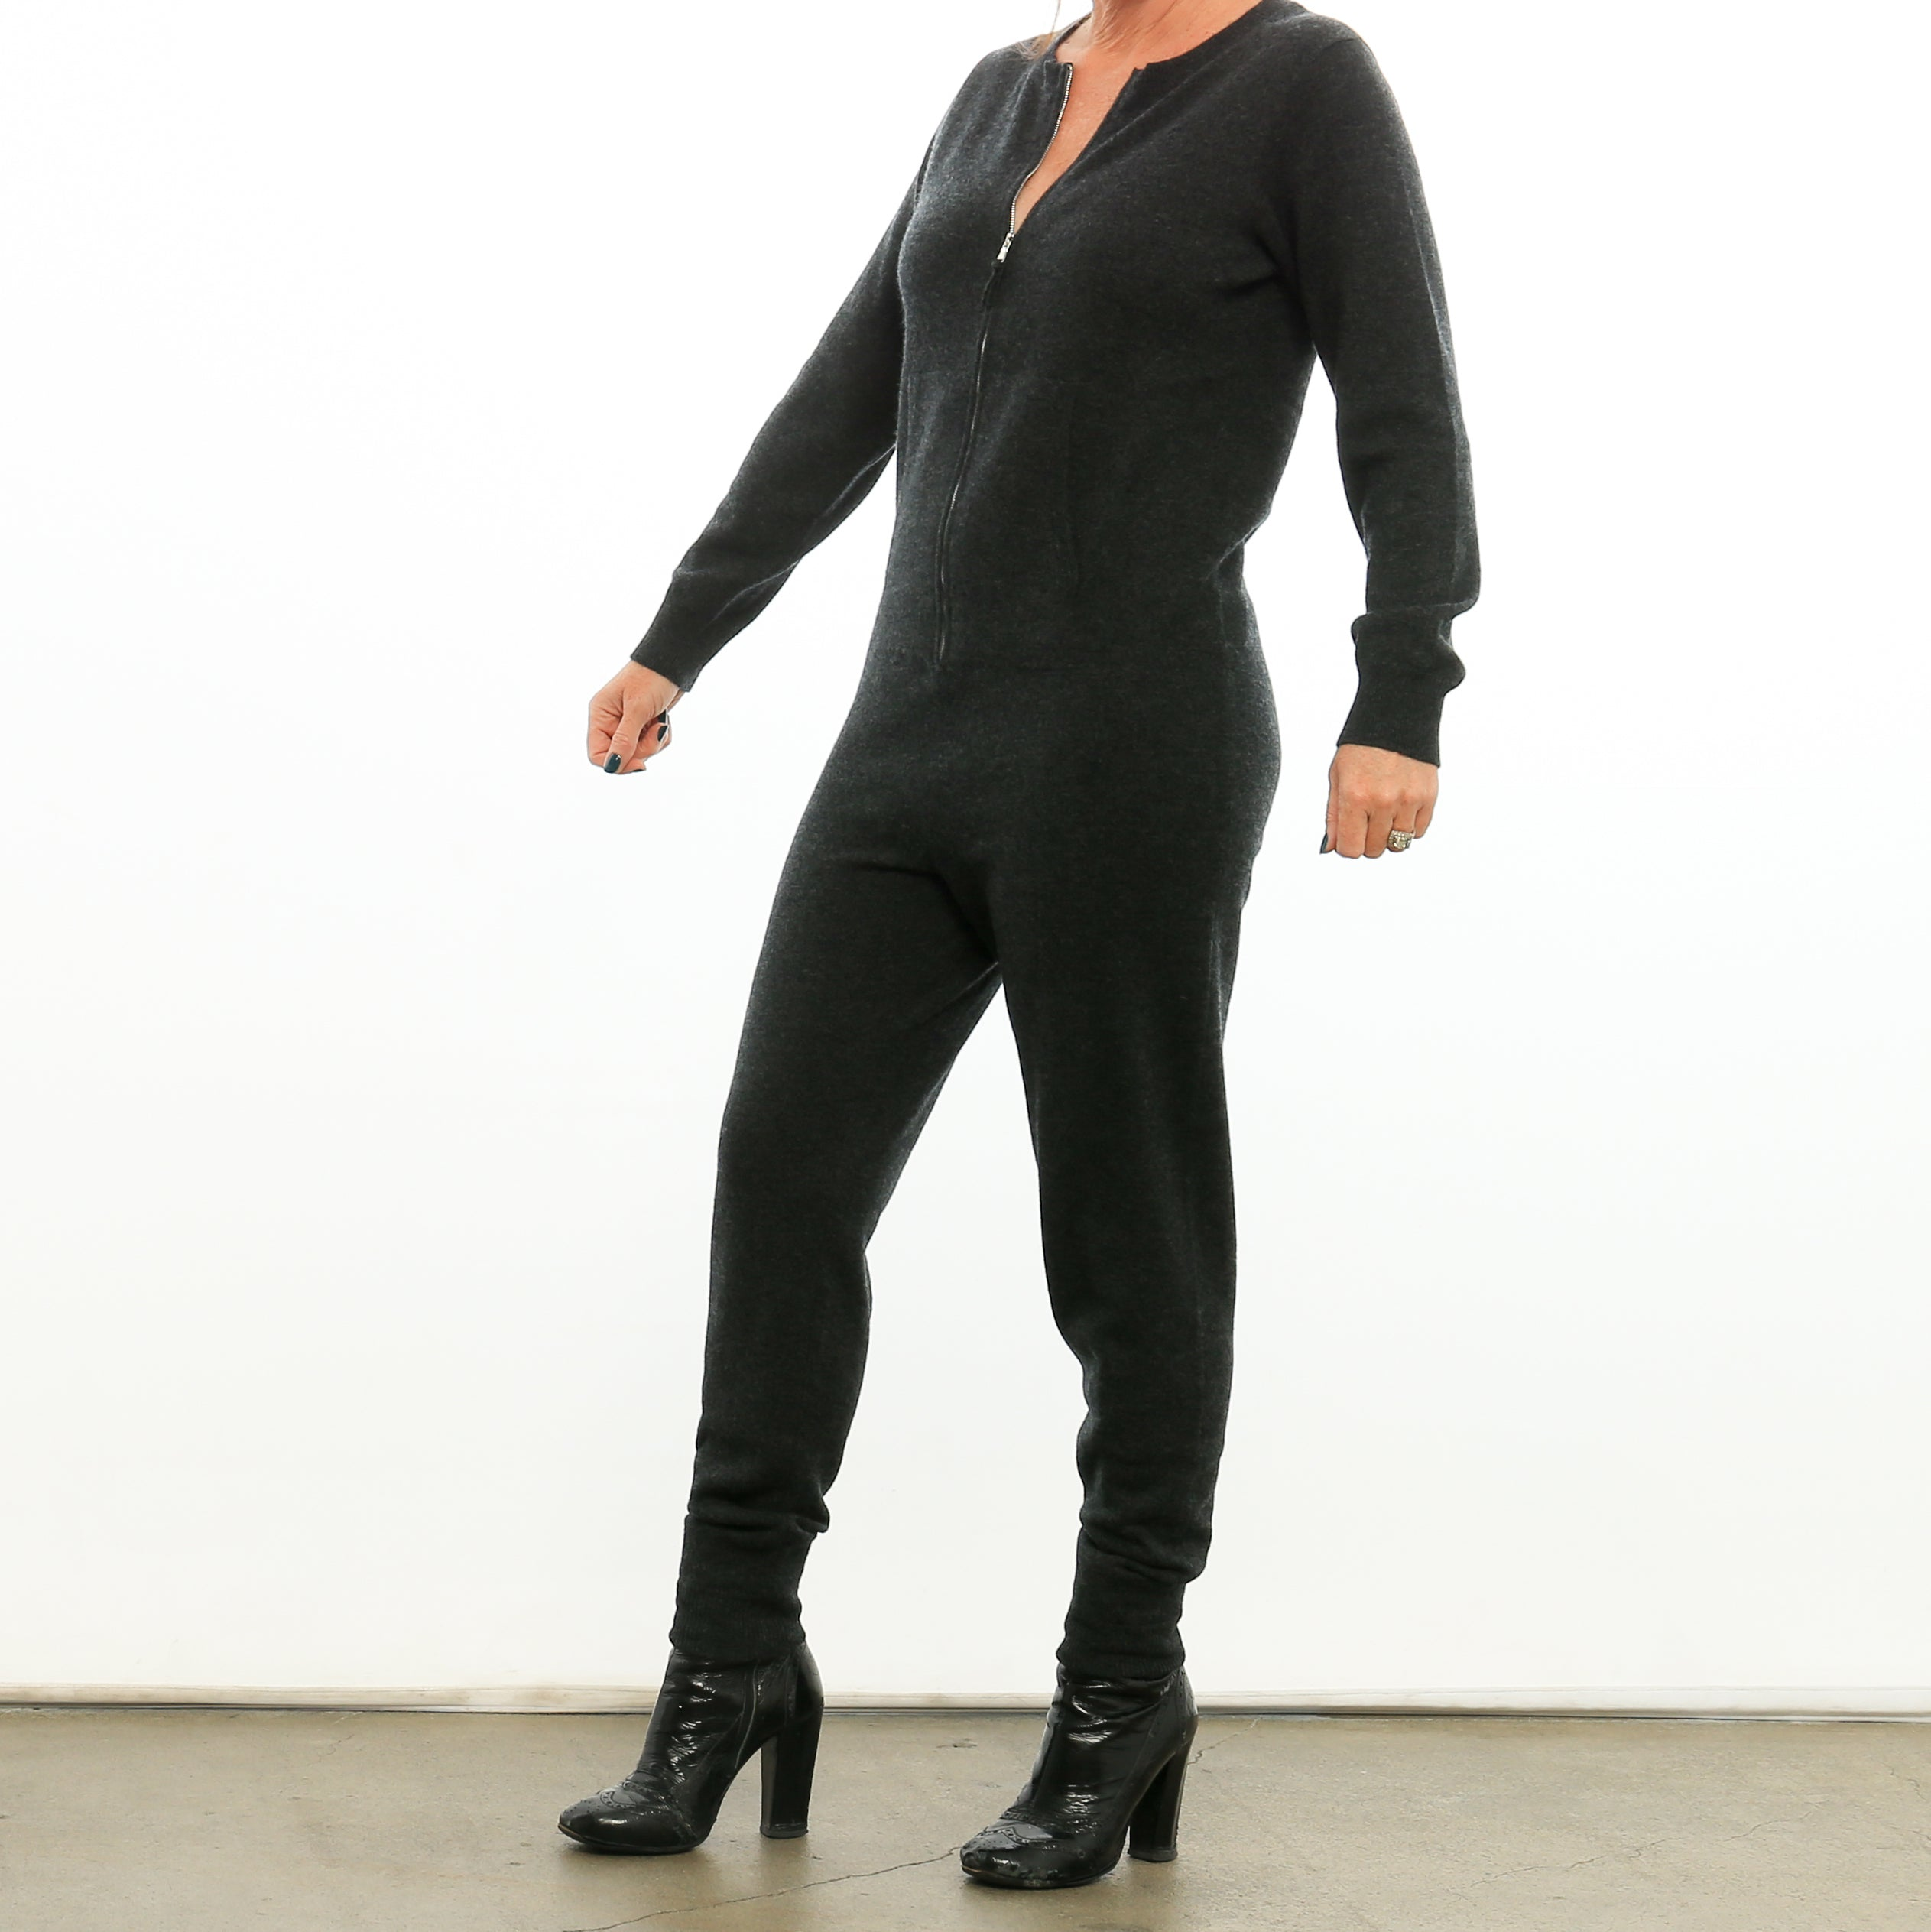 IN STOCK - La Börte Zipper Women - 100% Cashmere Onesie